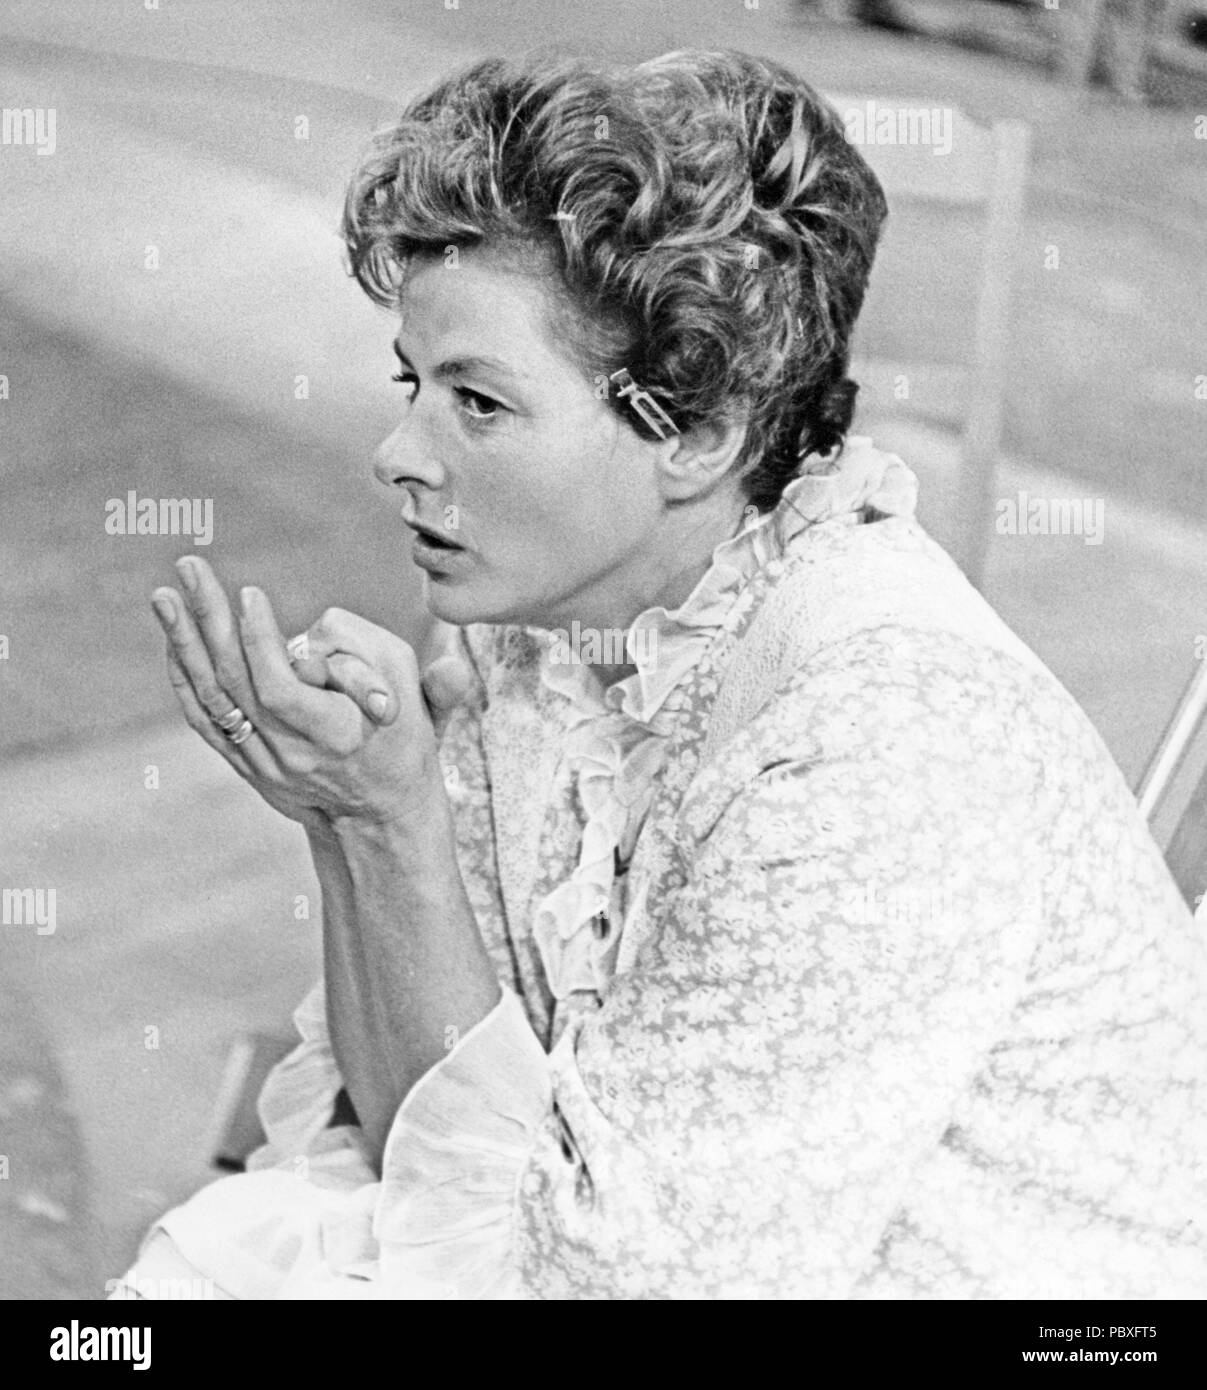 Ingrid Bergman. 1915-1982. Swedish actress. Pictured here during the filming of the anthology film Stimulantia. The film was divided into several different parts and Ingmar Bergman directed one of them. - Stock Image